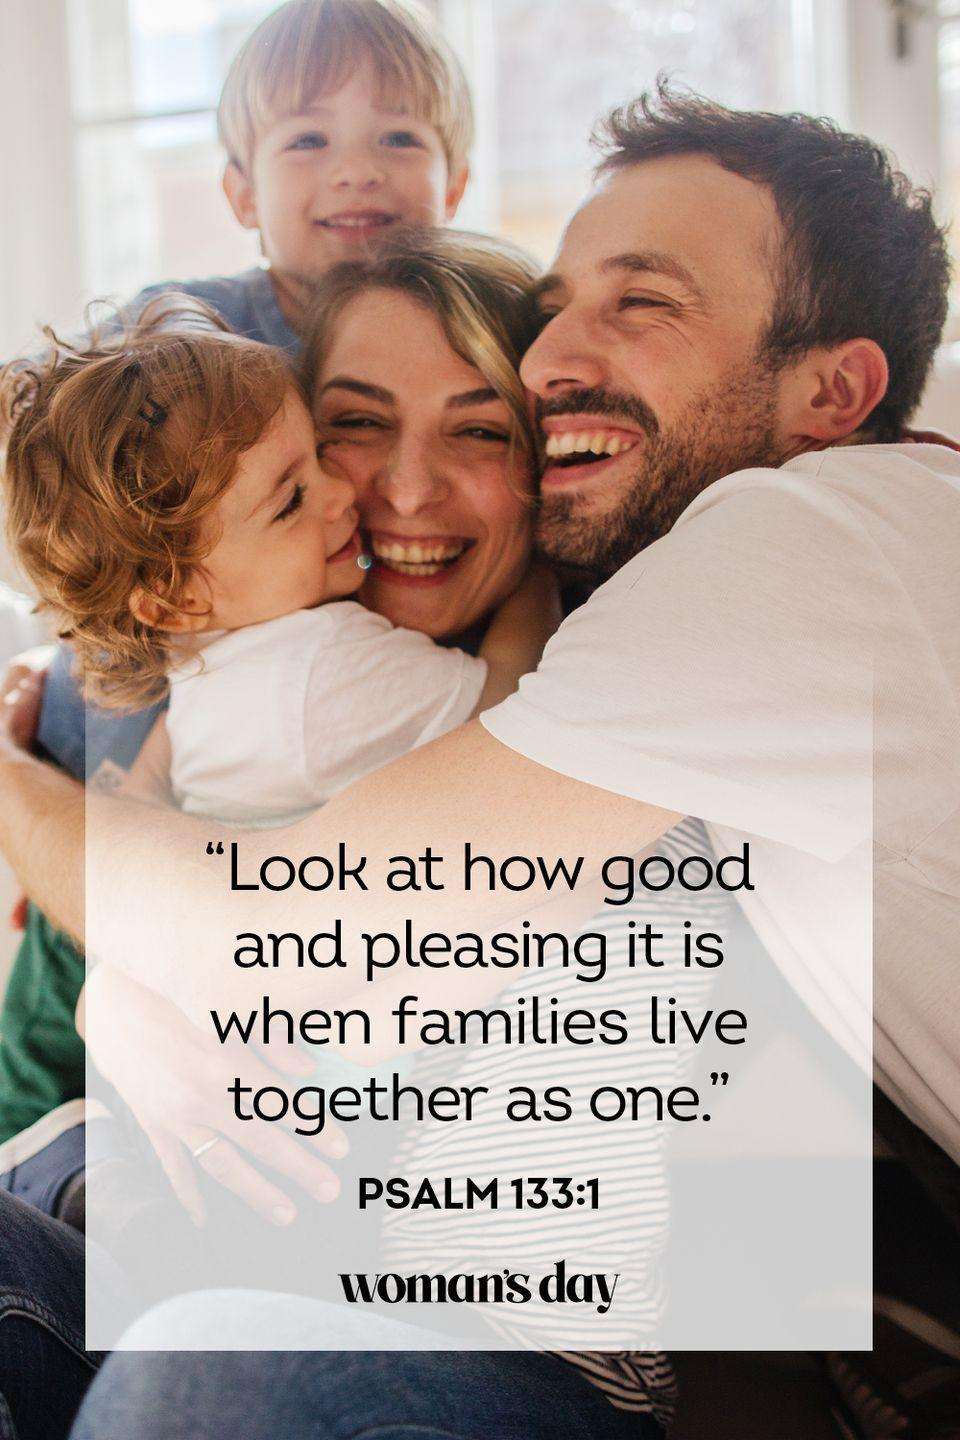 """<p>""""Look at how good and pleasing it is when families live together as one. """" — Psalm 133:1</p><p><strong>The Good News: </strong>Don't take the phrase """"living together"""" literally. Parents who live separately but still raise children together still adhere to this scripture by communicating and working to raise children with love. </p>"""